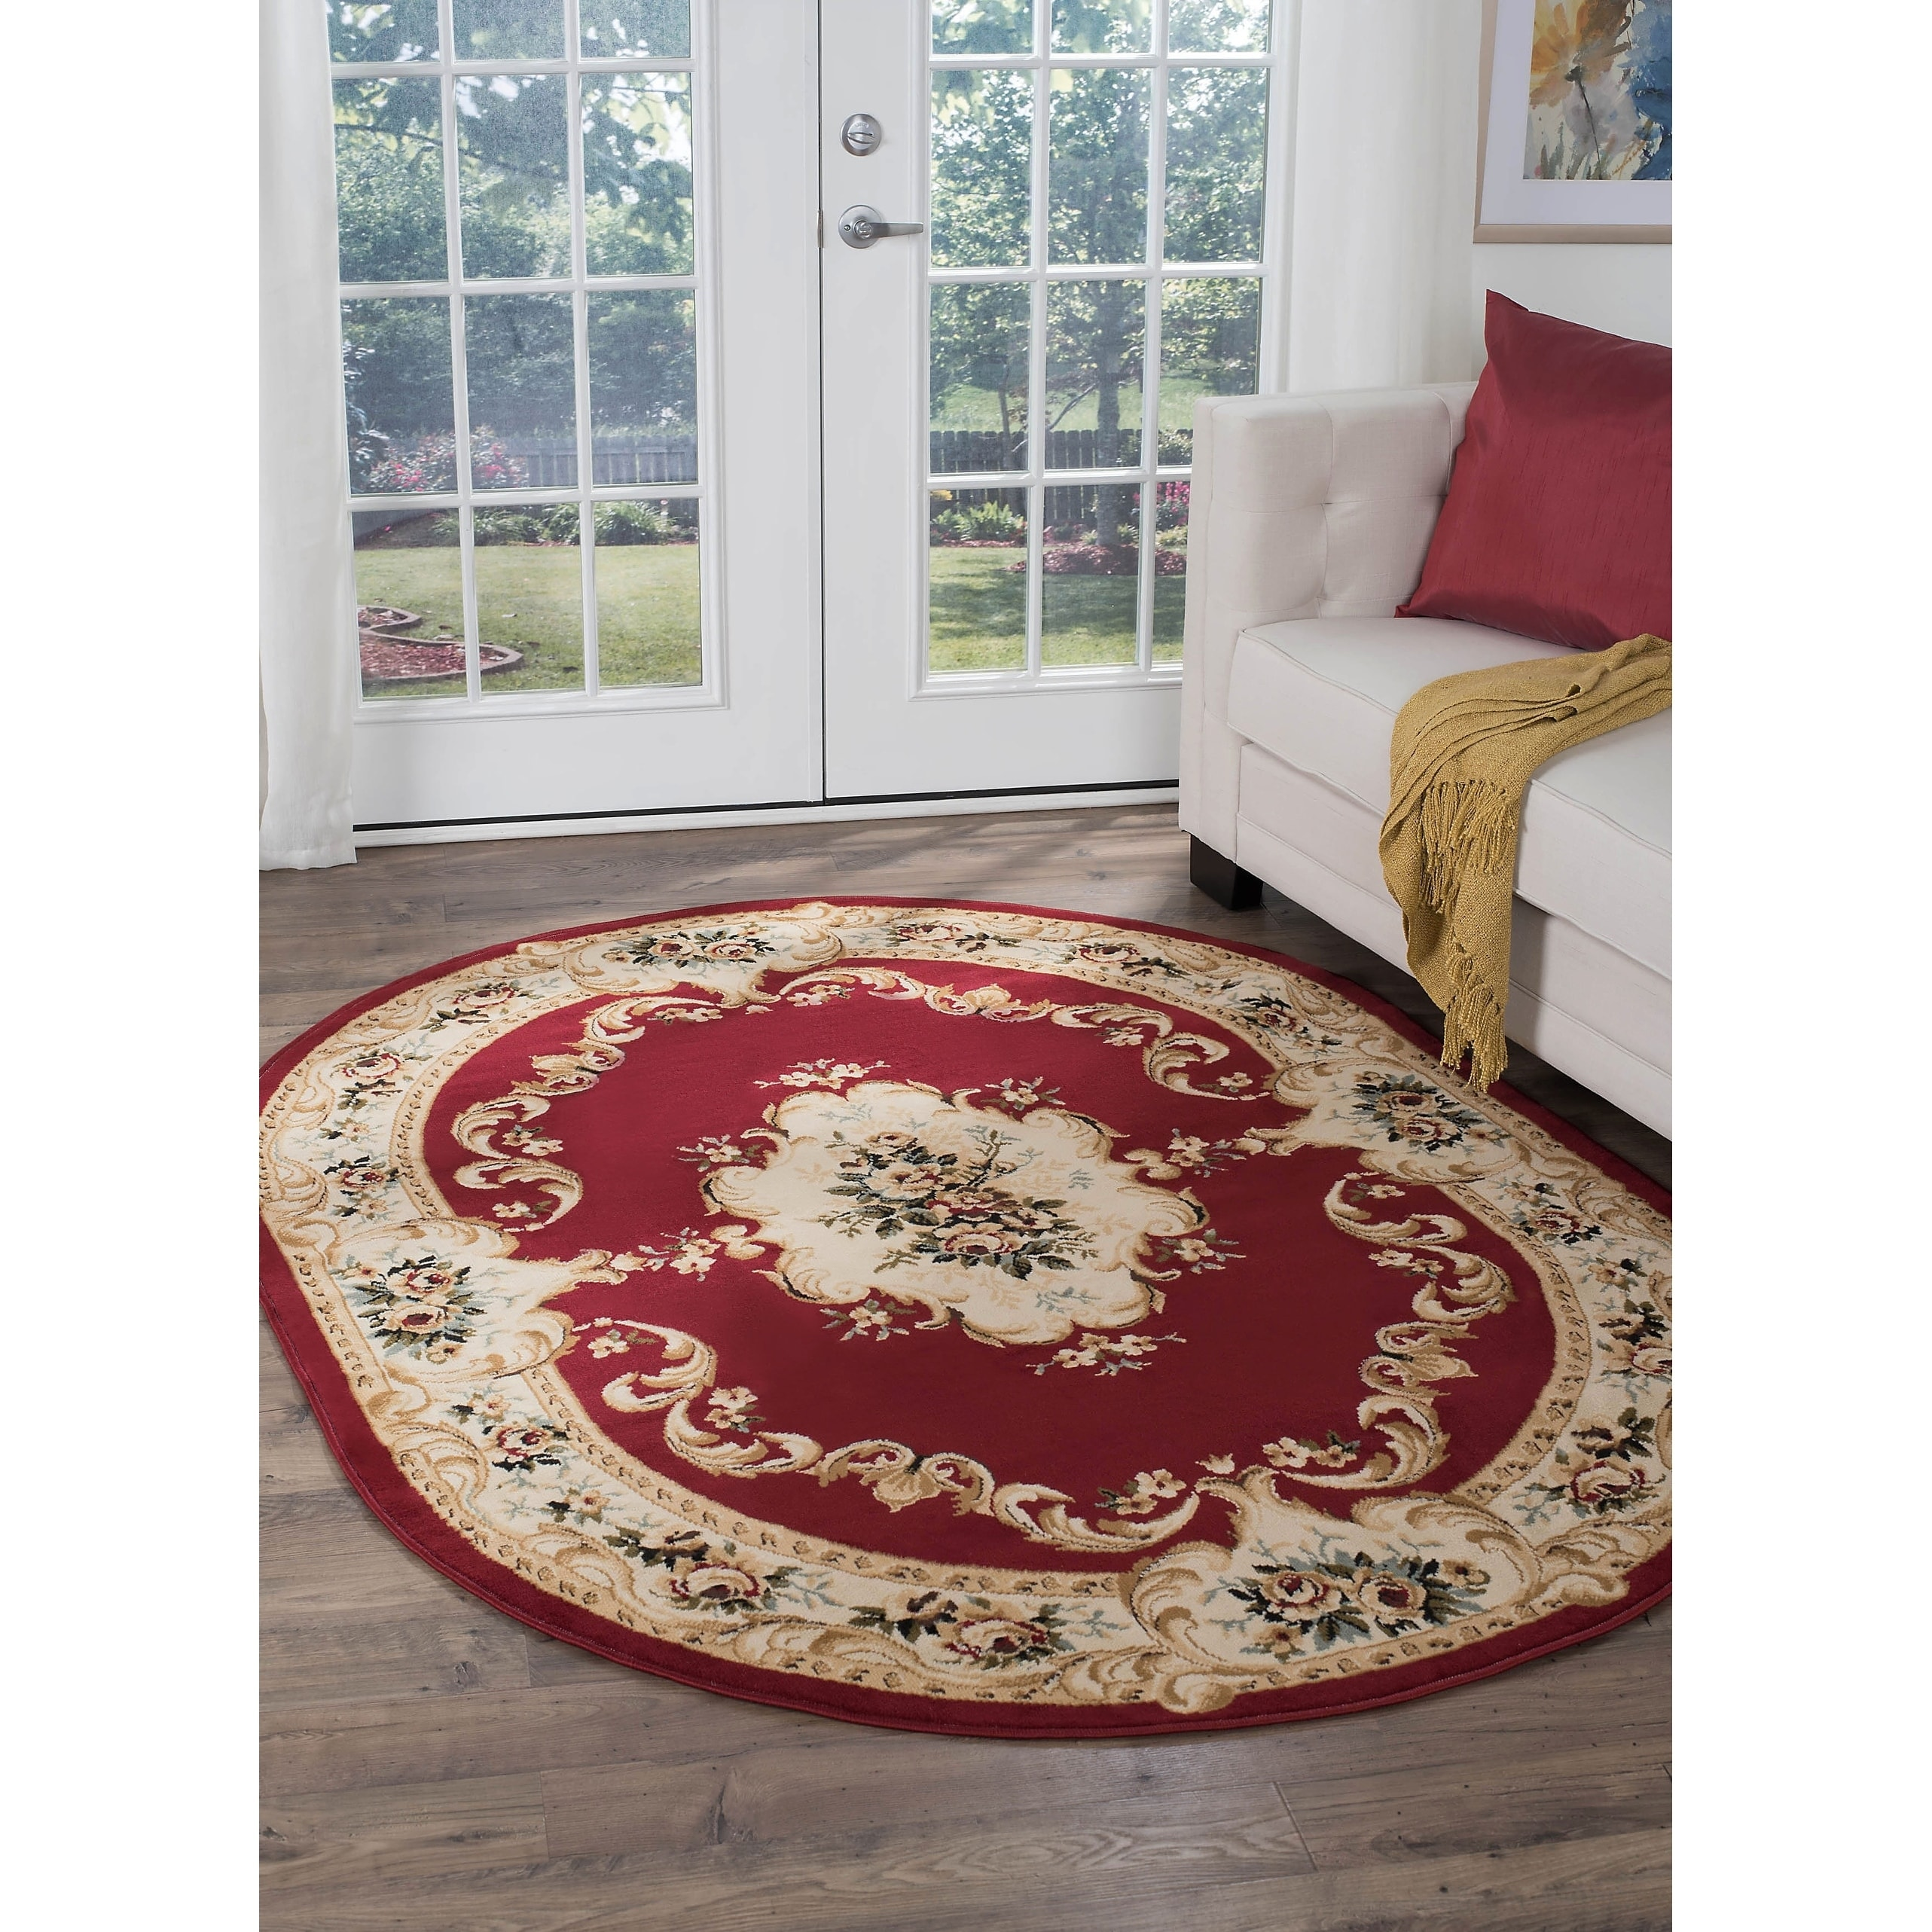 Shop Copper Grove Tunxis Red Oval Traditional Area Rug 5